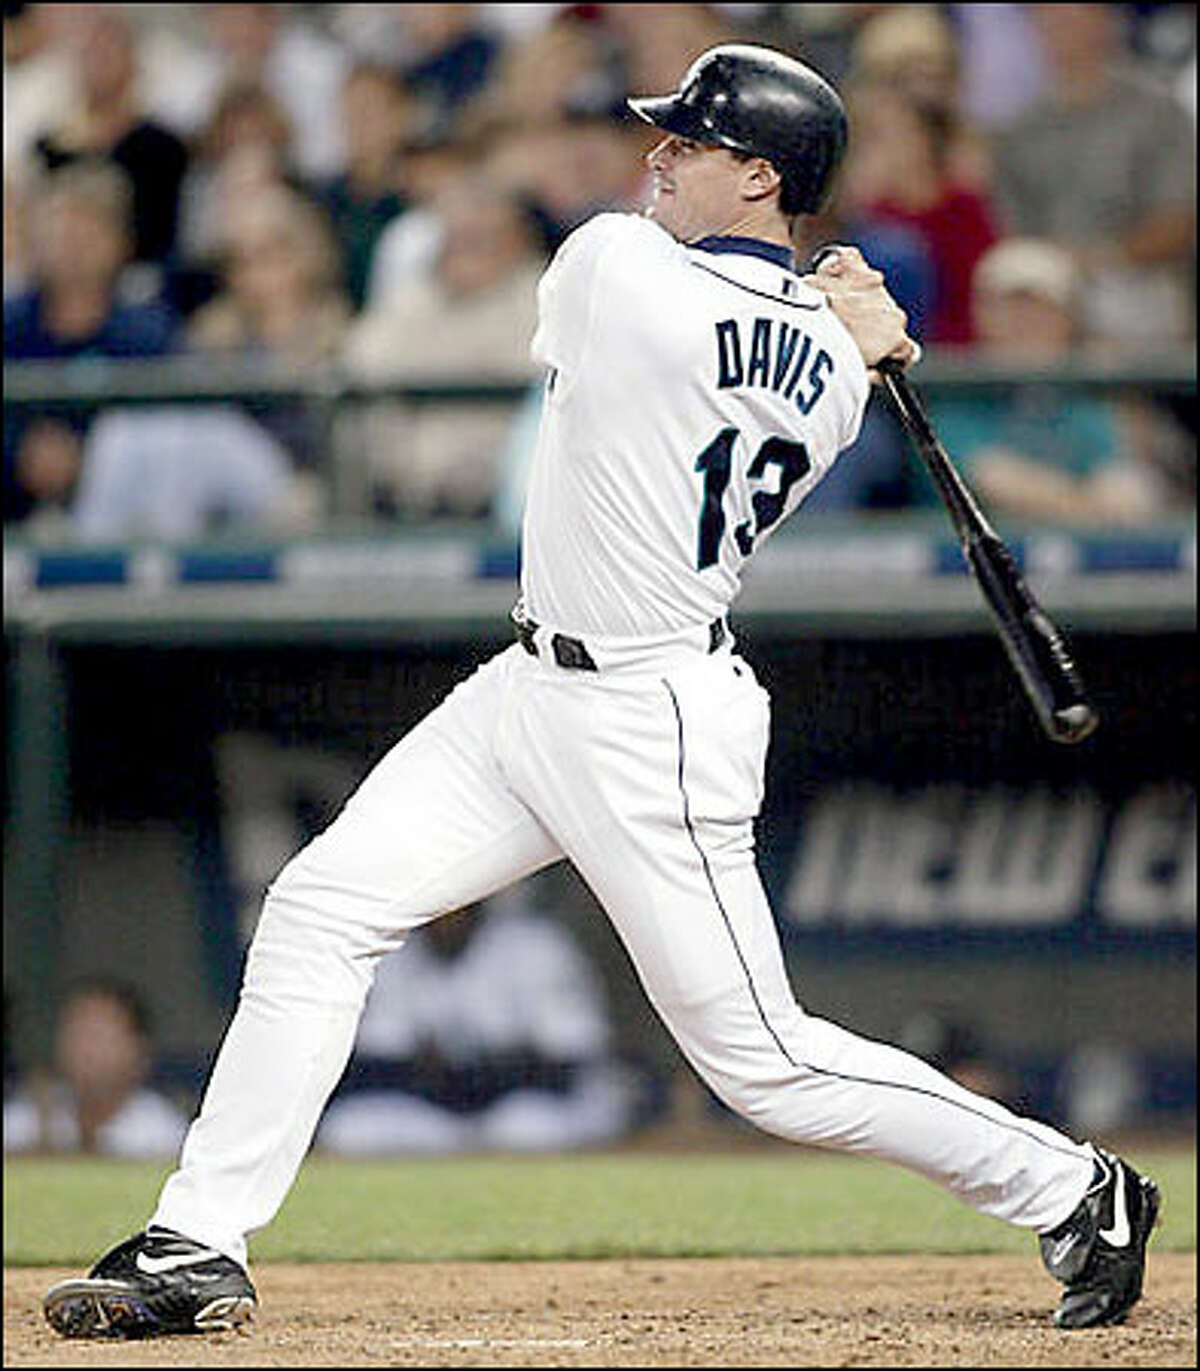 Mariners' Ben Davis hit a three-run home run on a pitch from Cleveland Indians' Sean Depaula during the sixth inning.